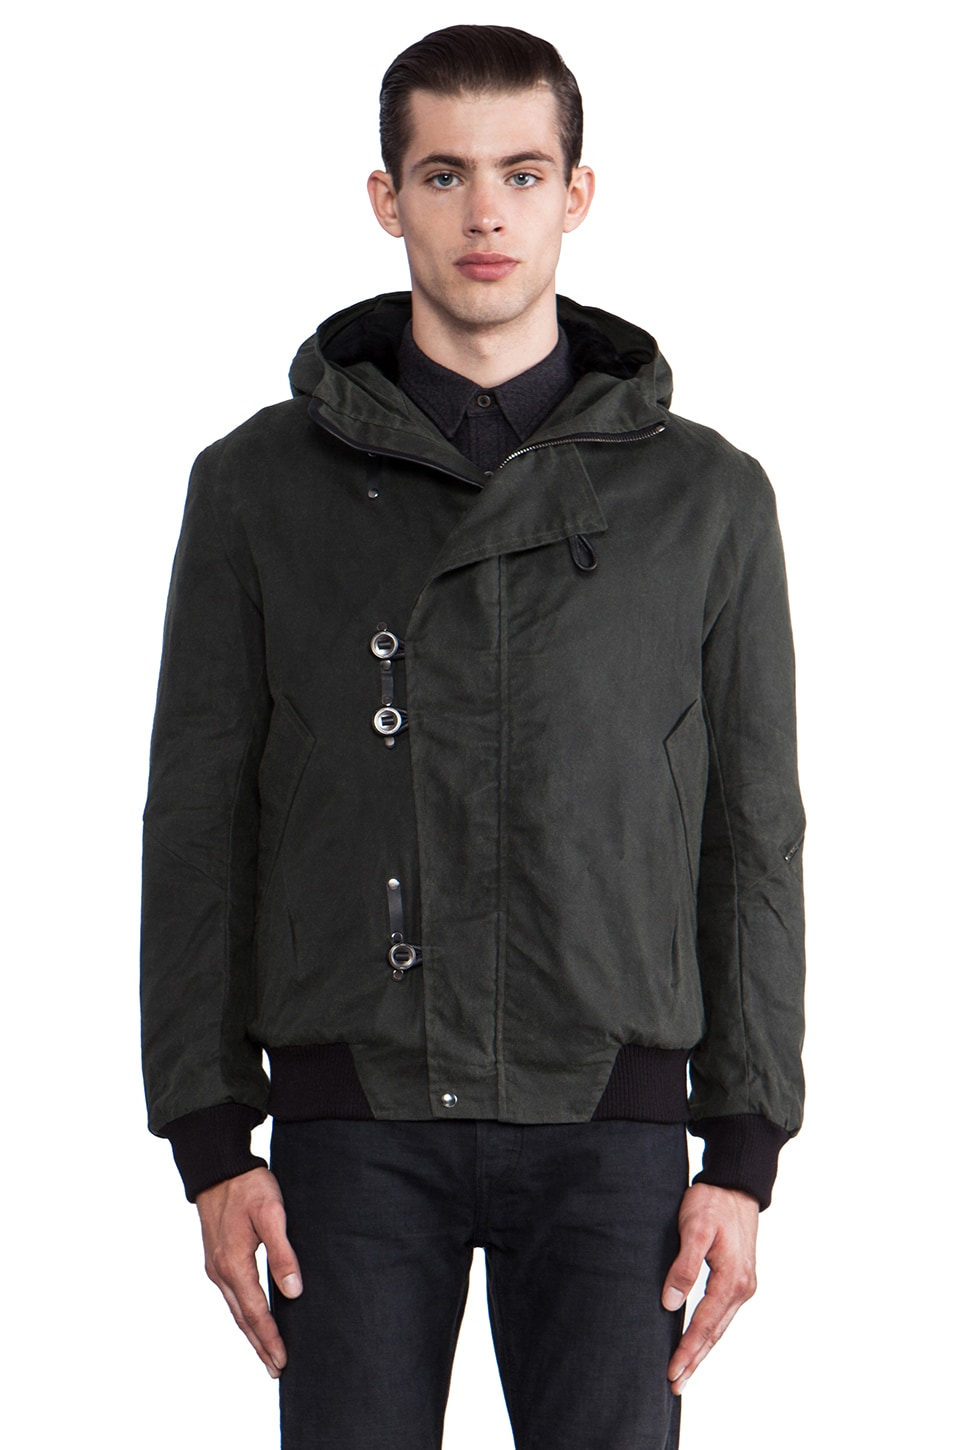 KRANE Emory Hooded Bomber in Olive